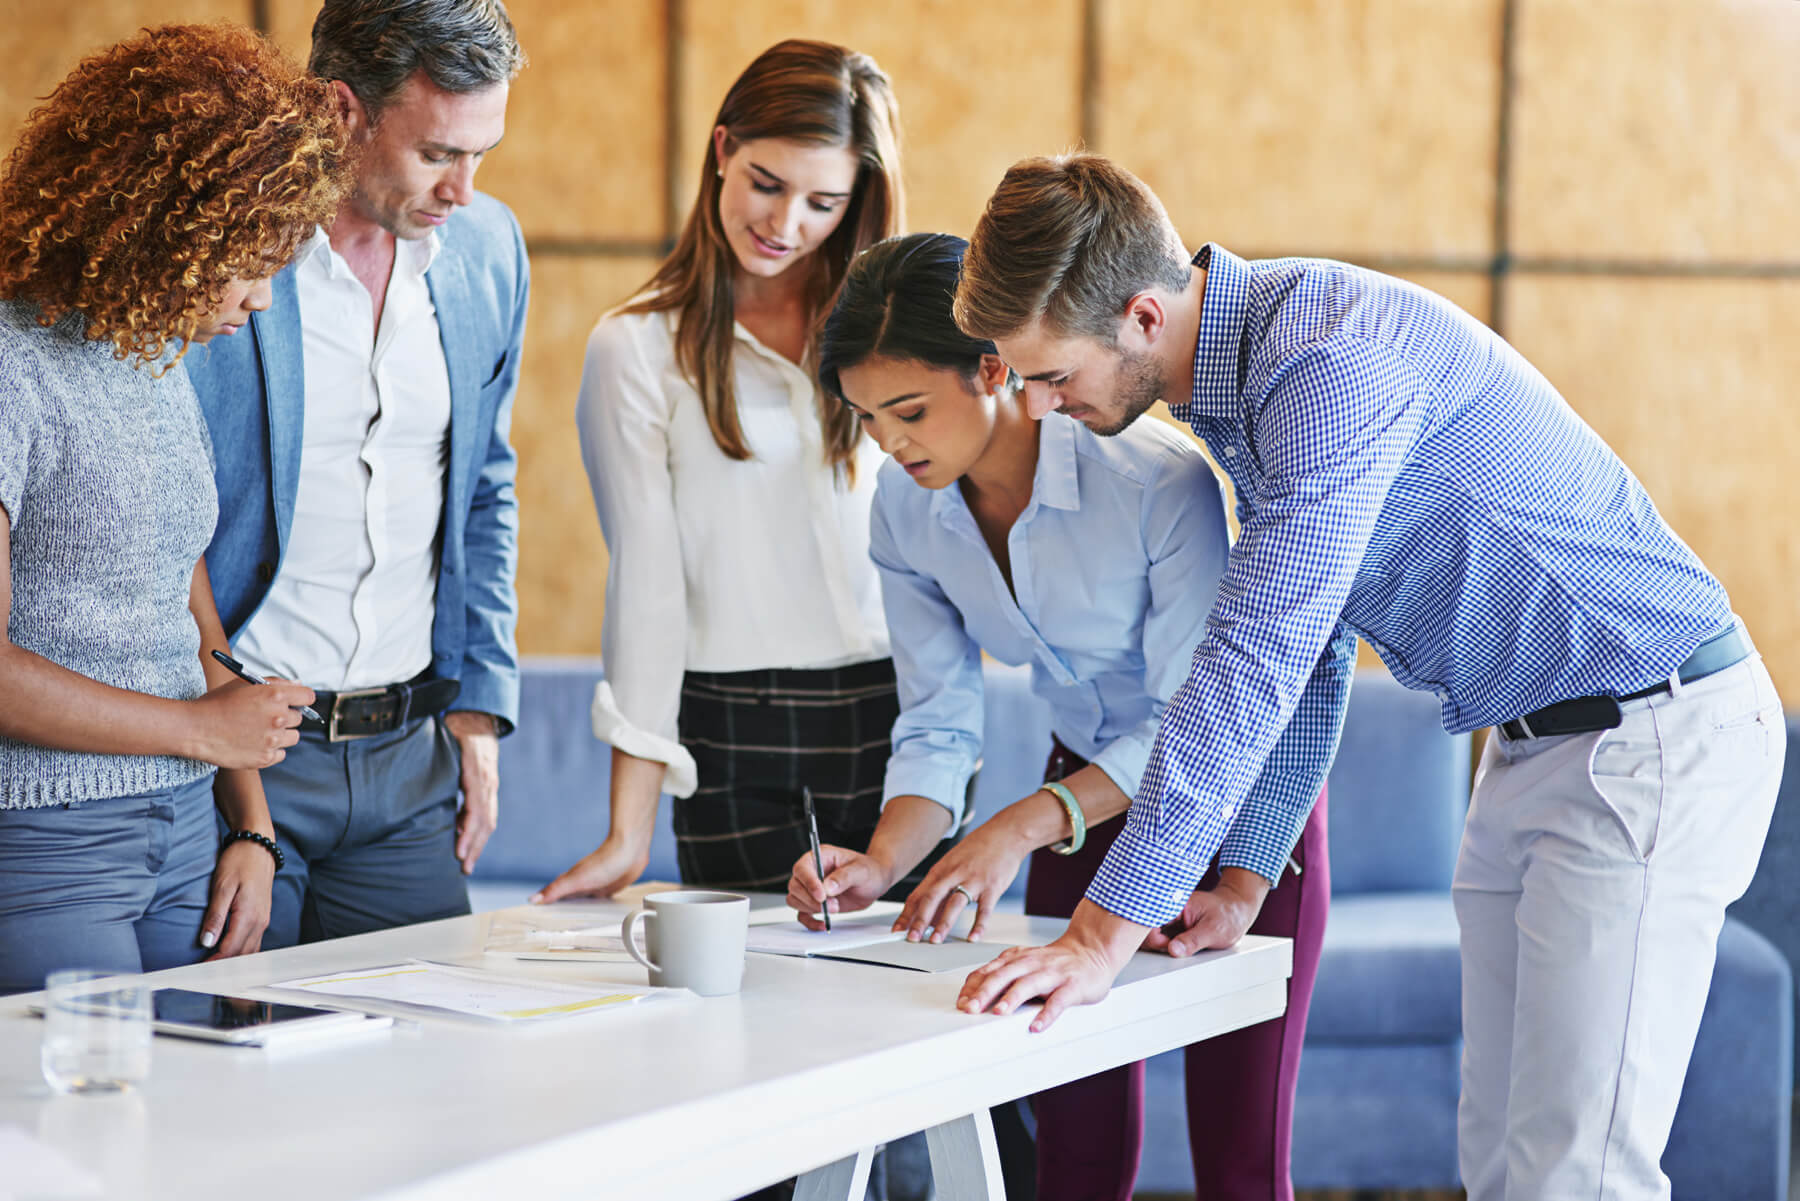 Miles Employment Group has been providing temporary staffing solutions since 2003, which include temp2hire, RPO, and contract staffing for companies all across BC.